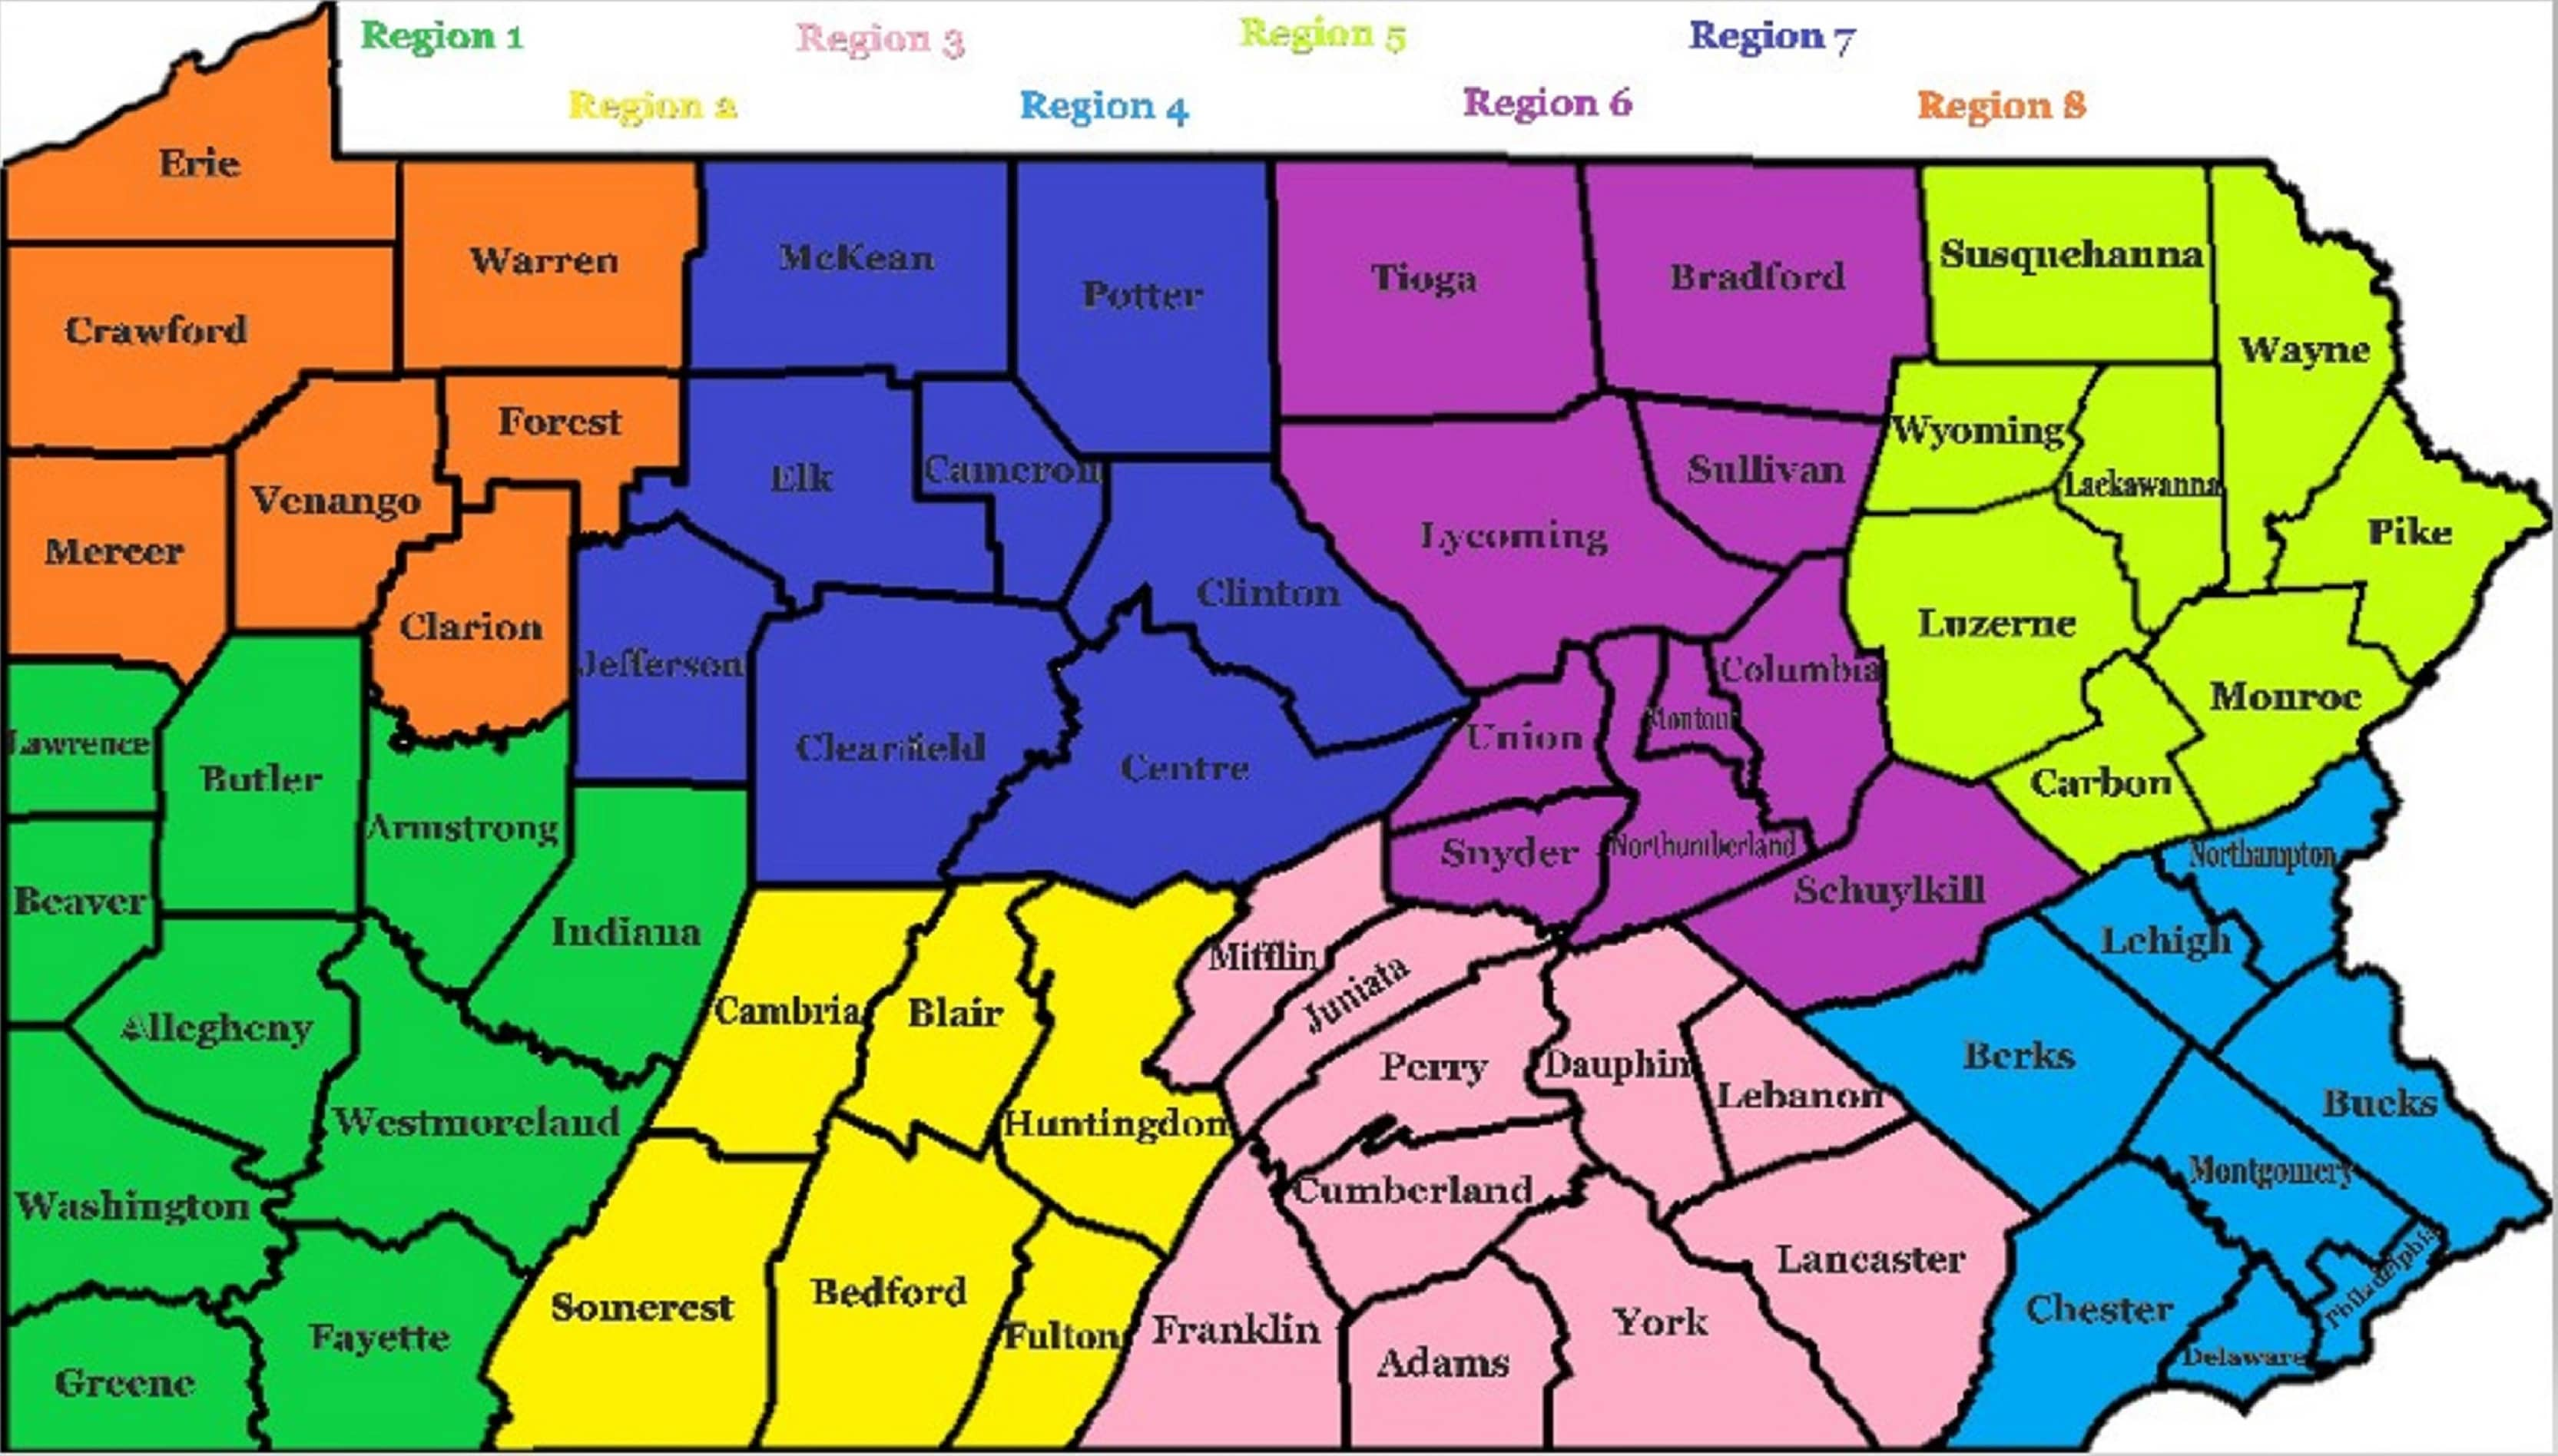 Map of Regions - Pennsylvania Society of Physician Assistants